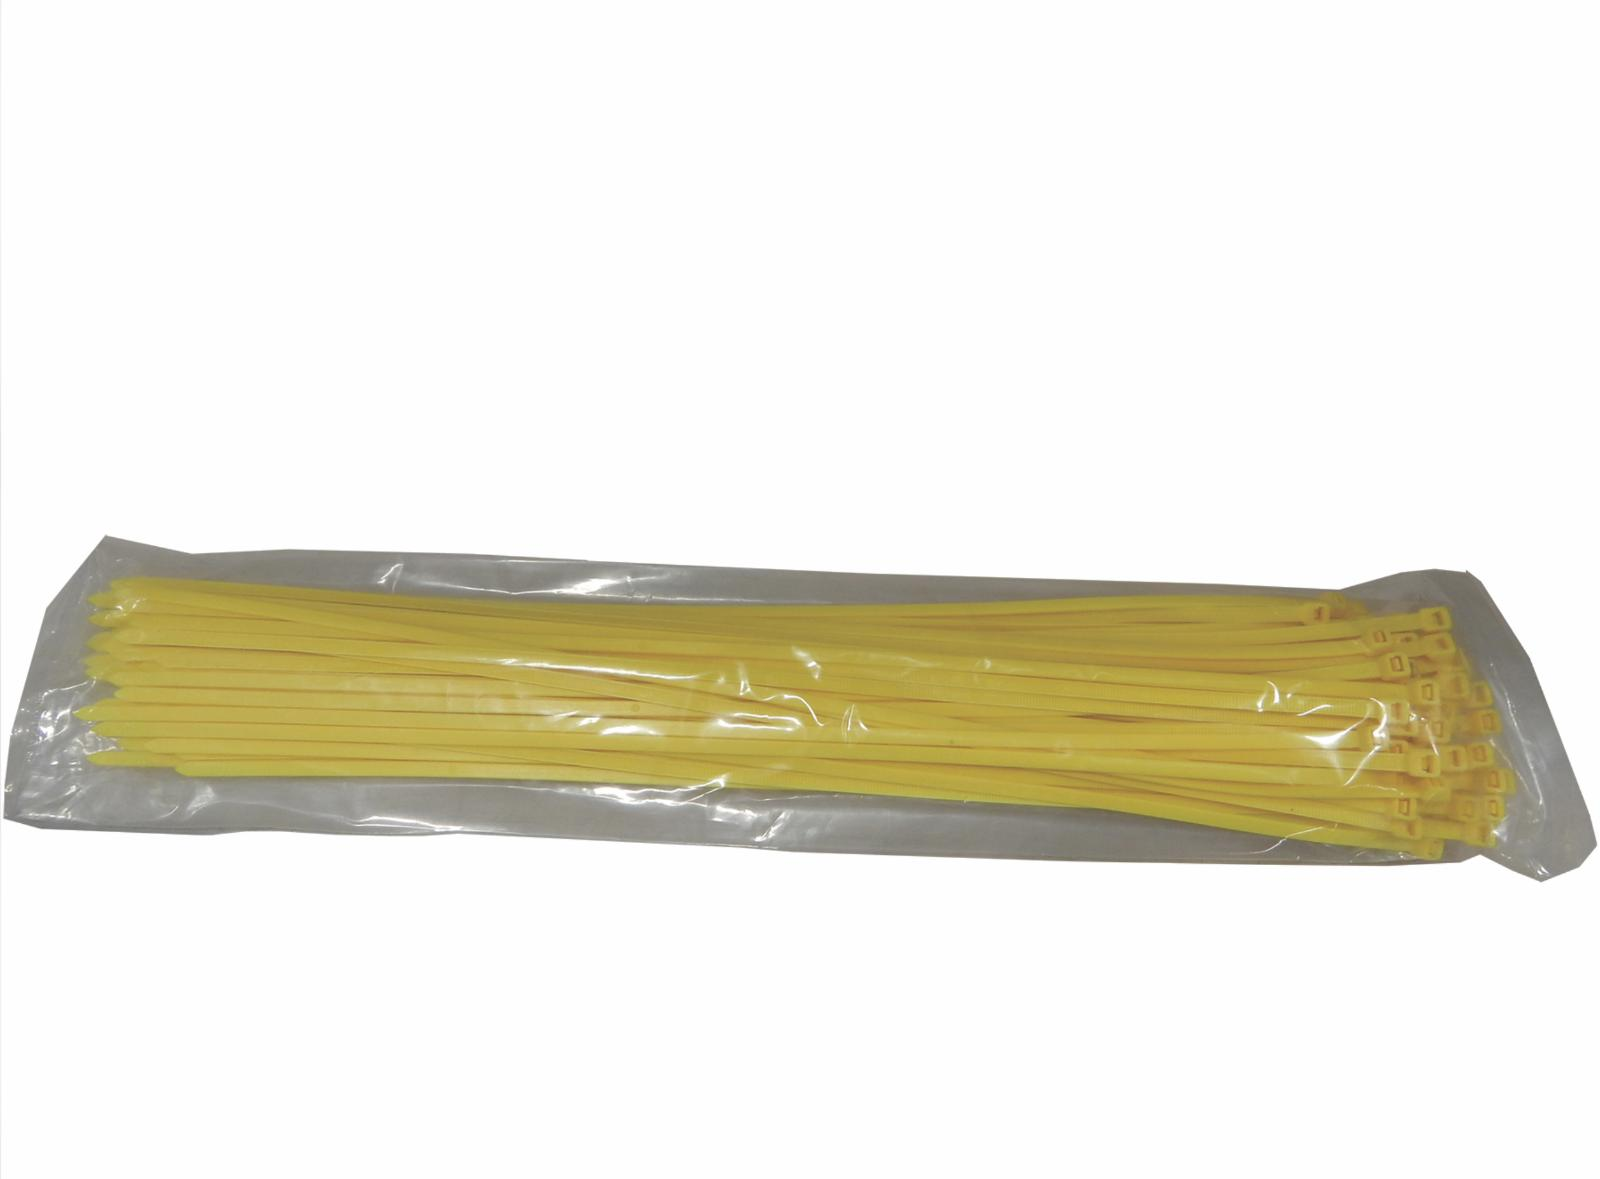 cable ties 20 pack of 100 yellow